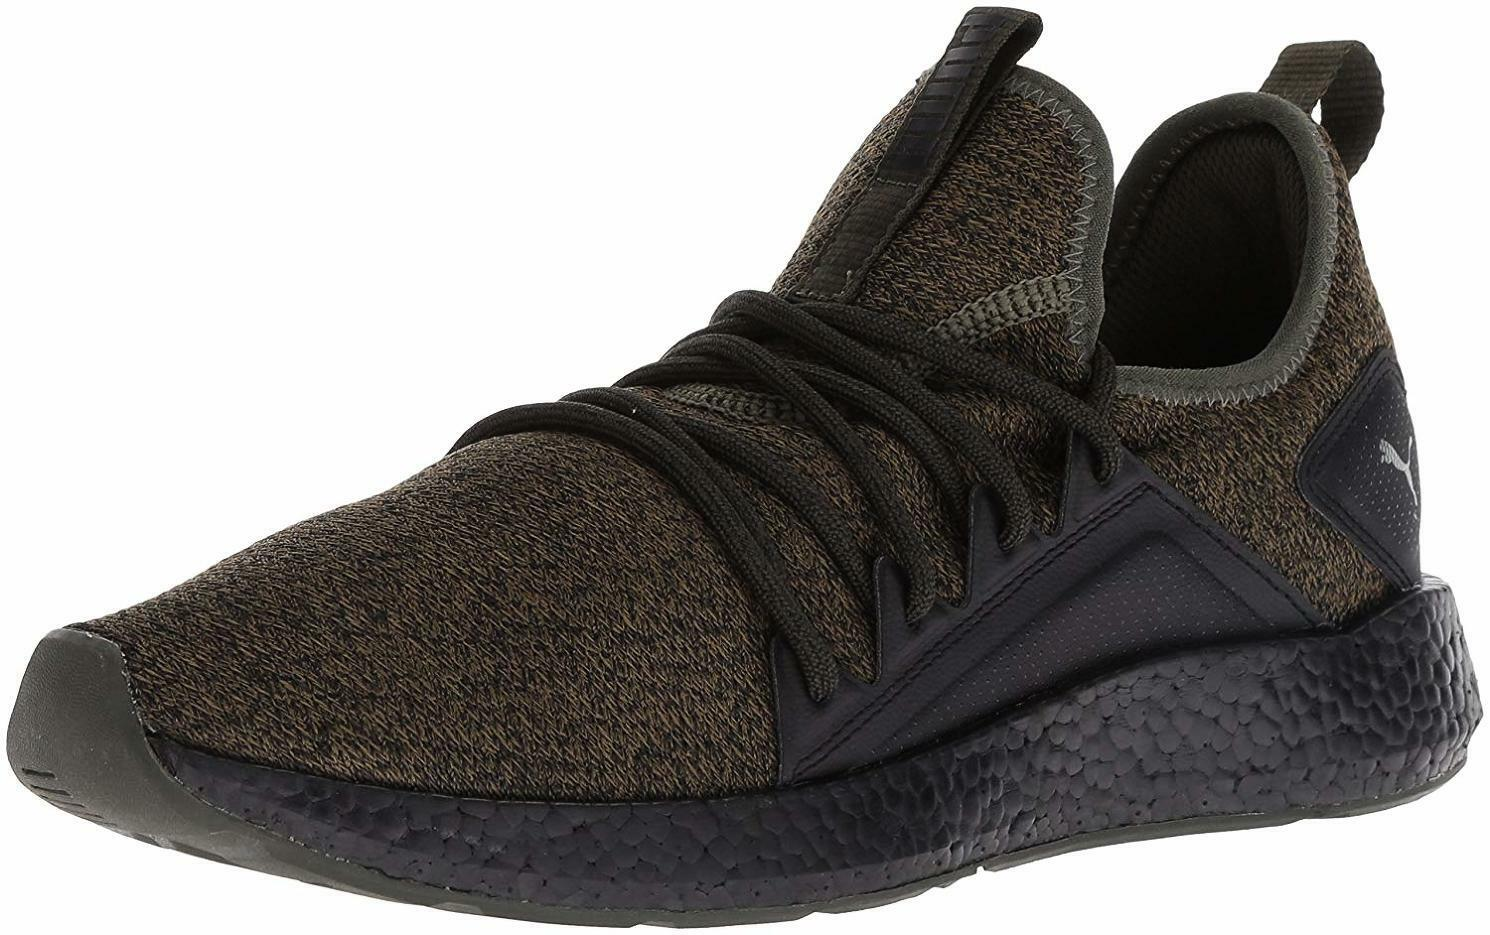 PUMA Men's Nrgy Neko Knit Sneaker, - Choose SZ color